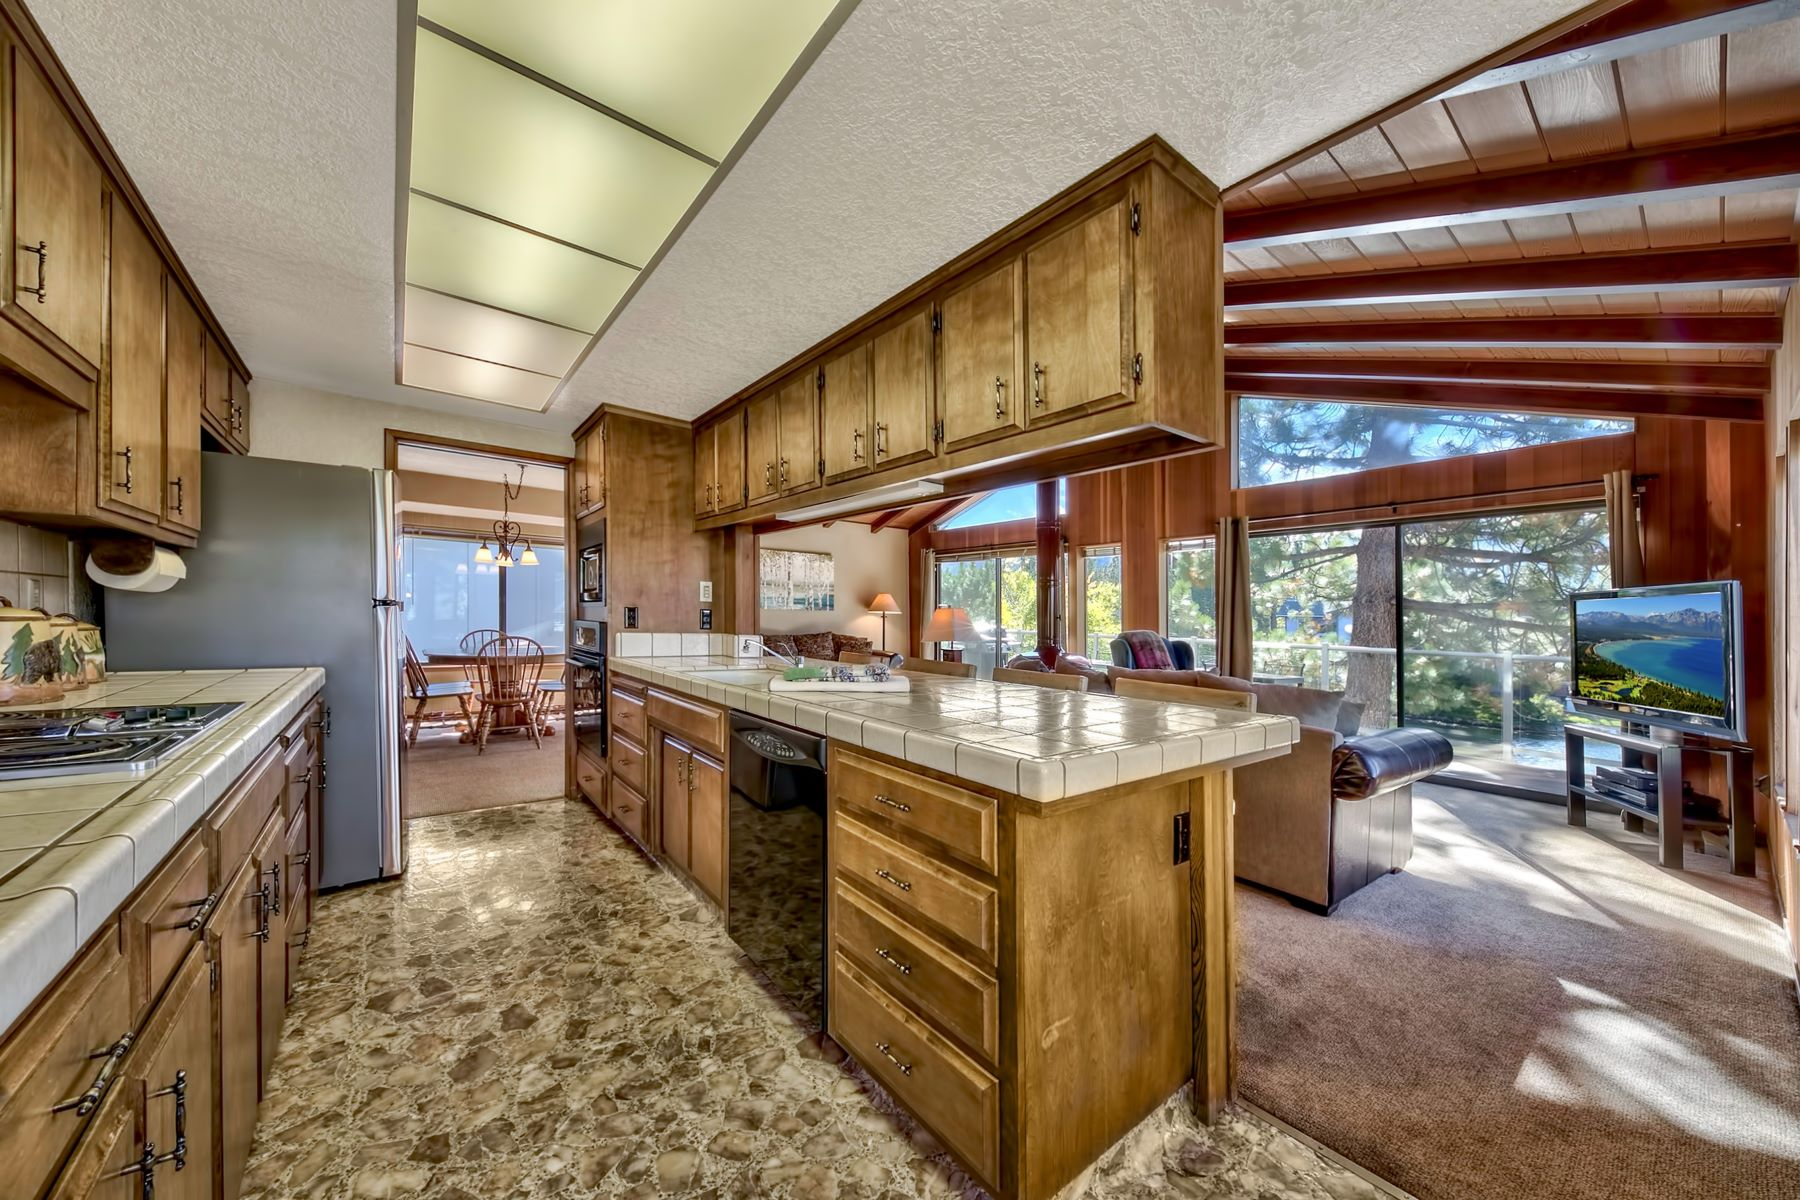 Additional photo for property listing at 1927 Marconi Way , South Lake Tahoe, CA 96150 1927 Marconi Way 南太浩湖, 加利福尼亚州 96150 美国